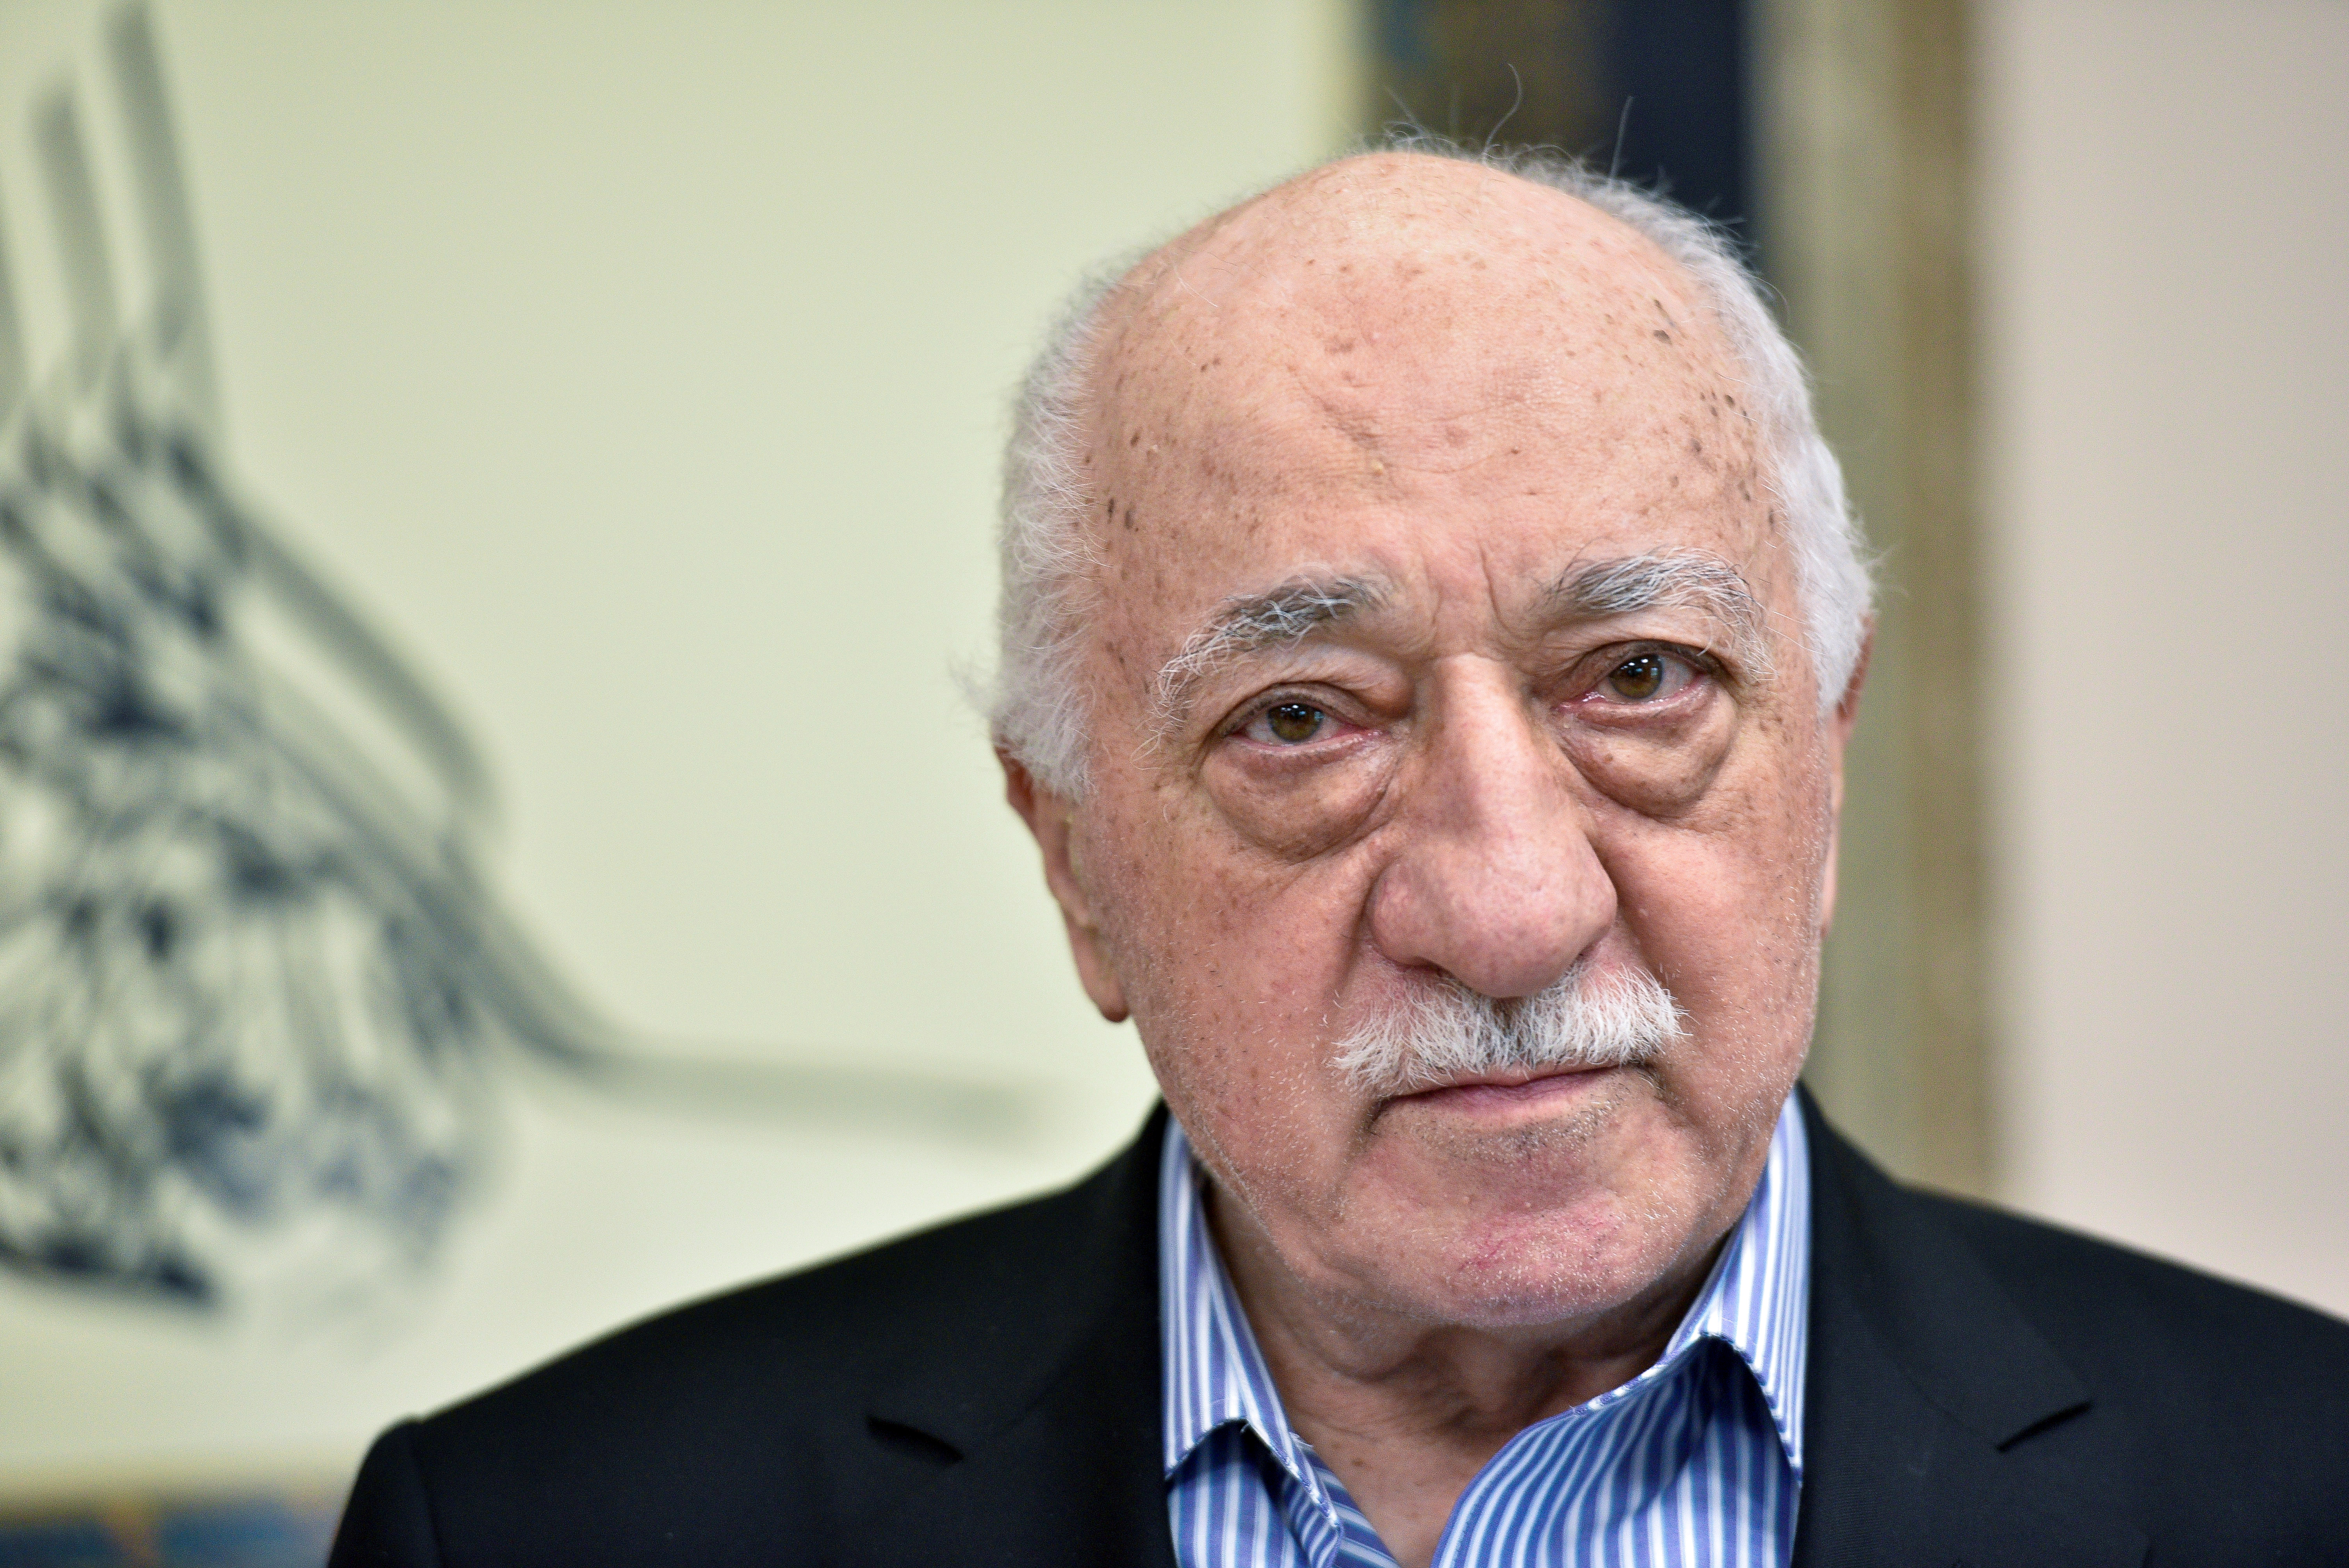 U.S.-based cleric Fethullah Gulen at his home in Saylorsburg, Pa., on July 29, 2016